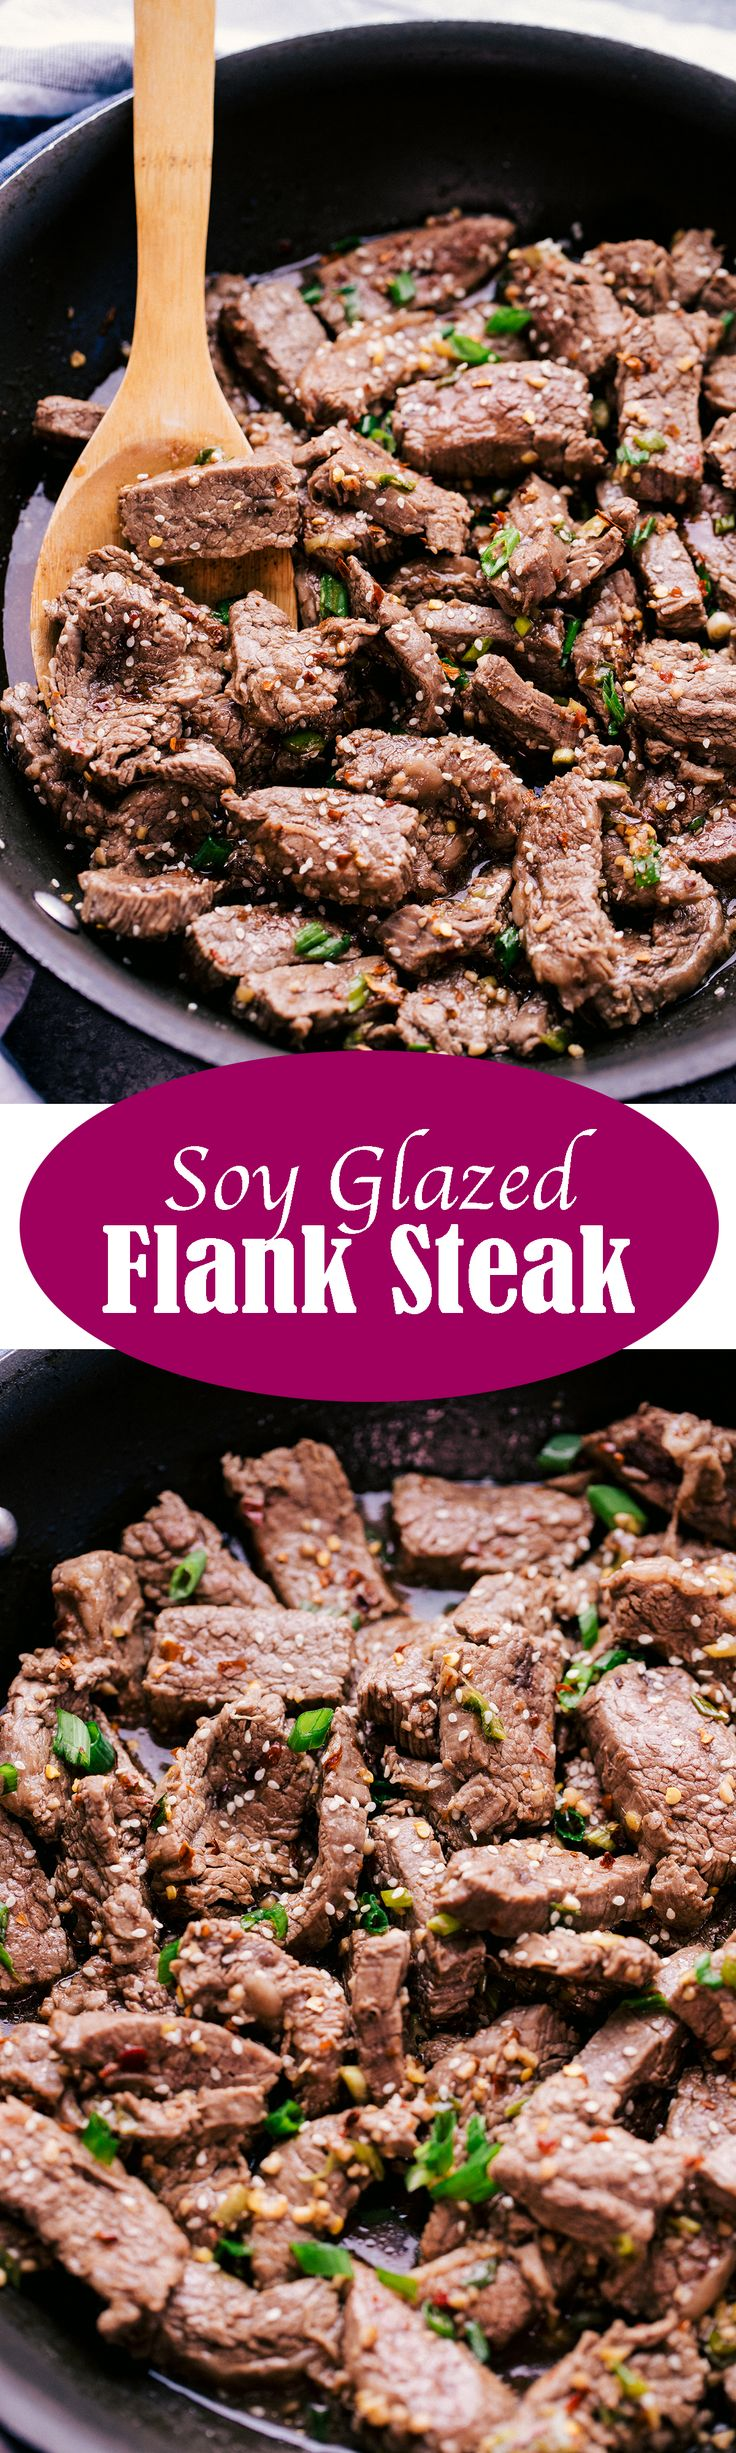 SOY GLAZED FLANK STEAK